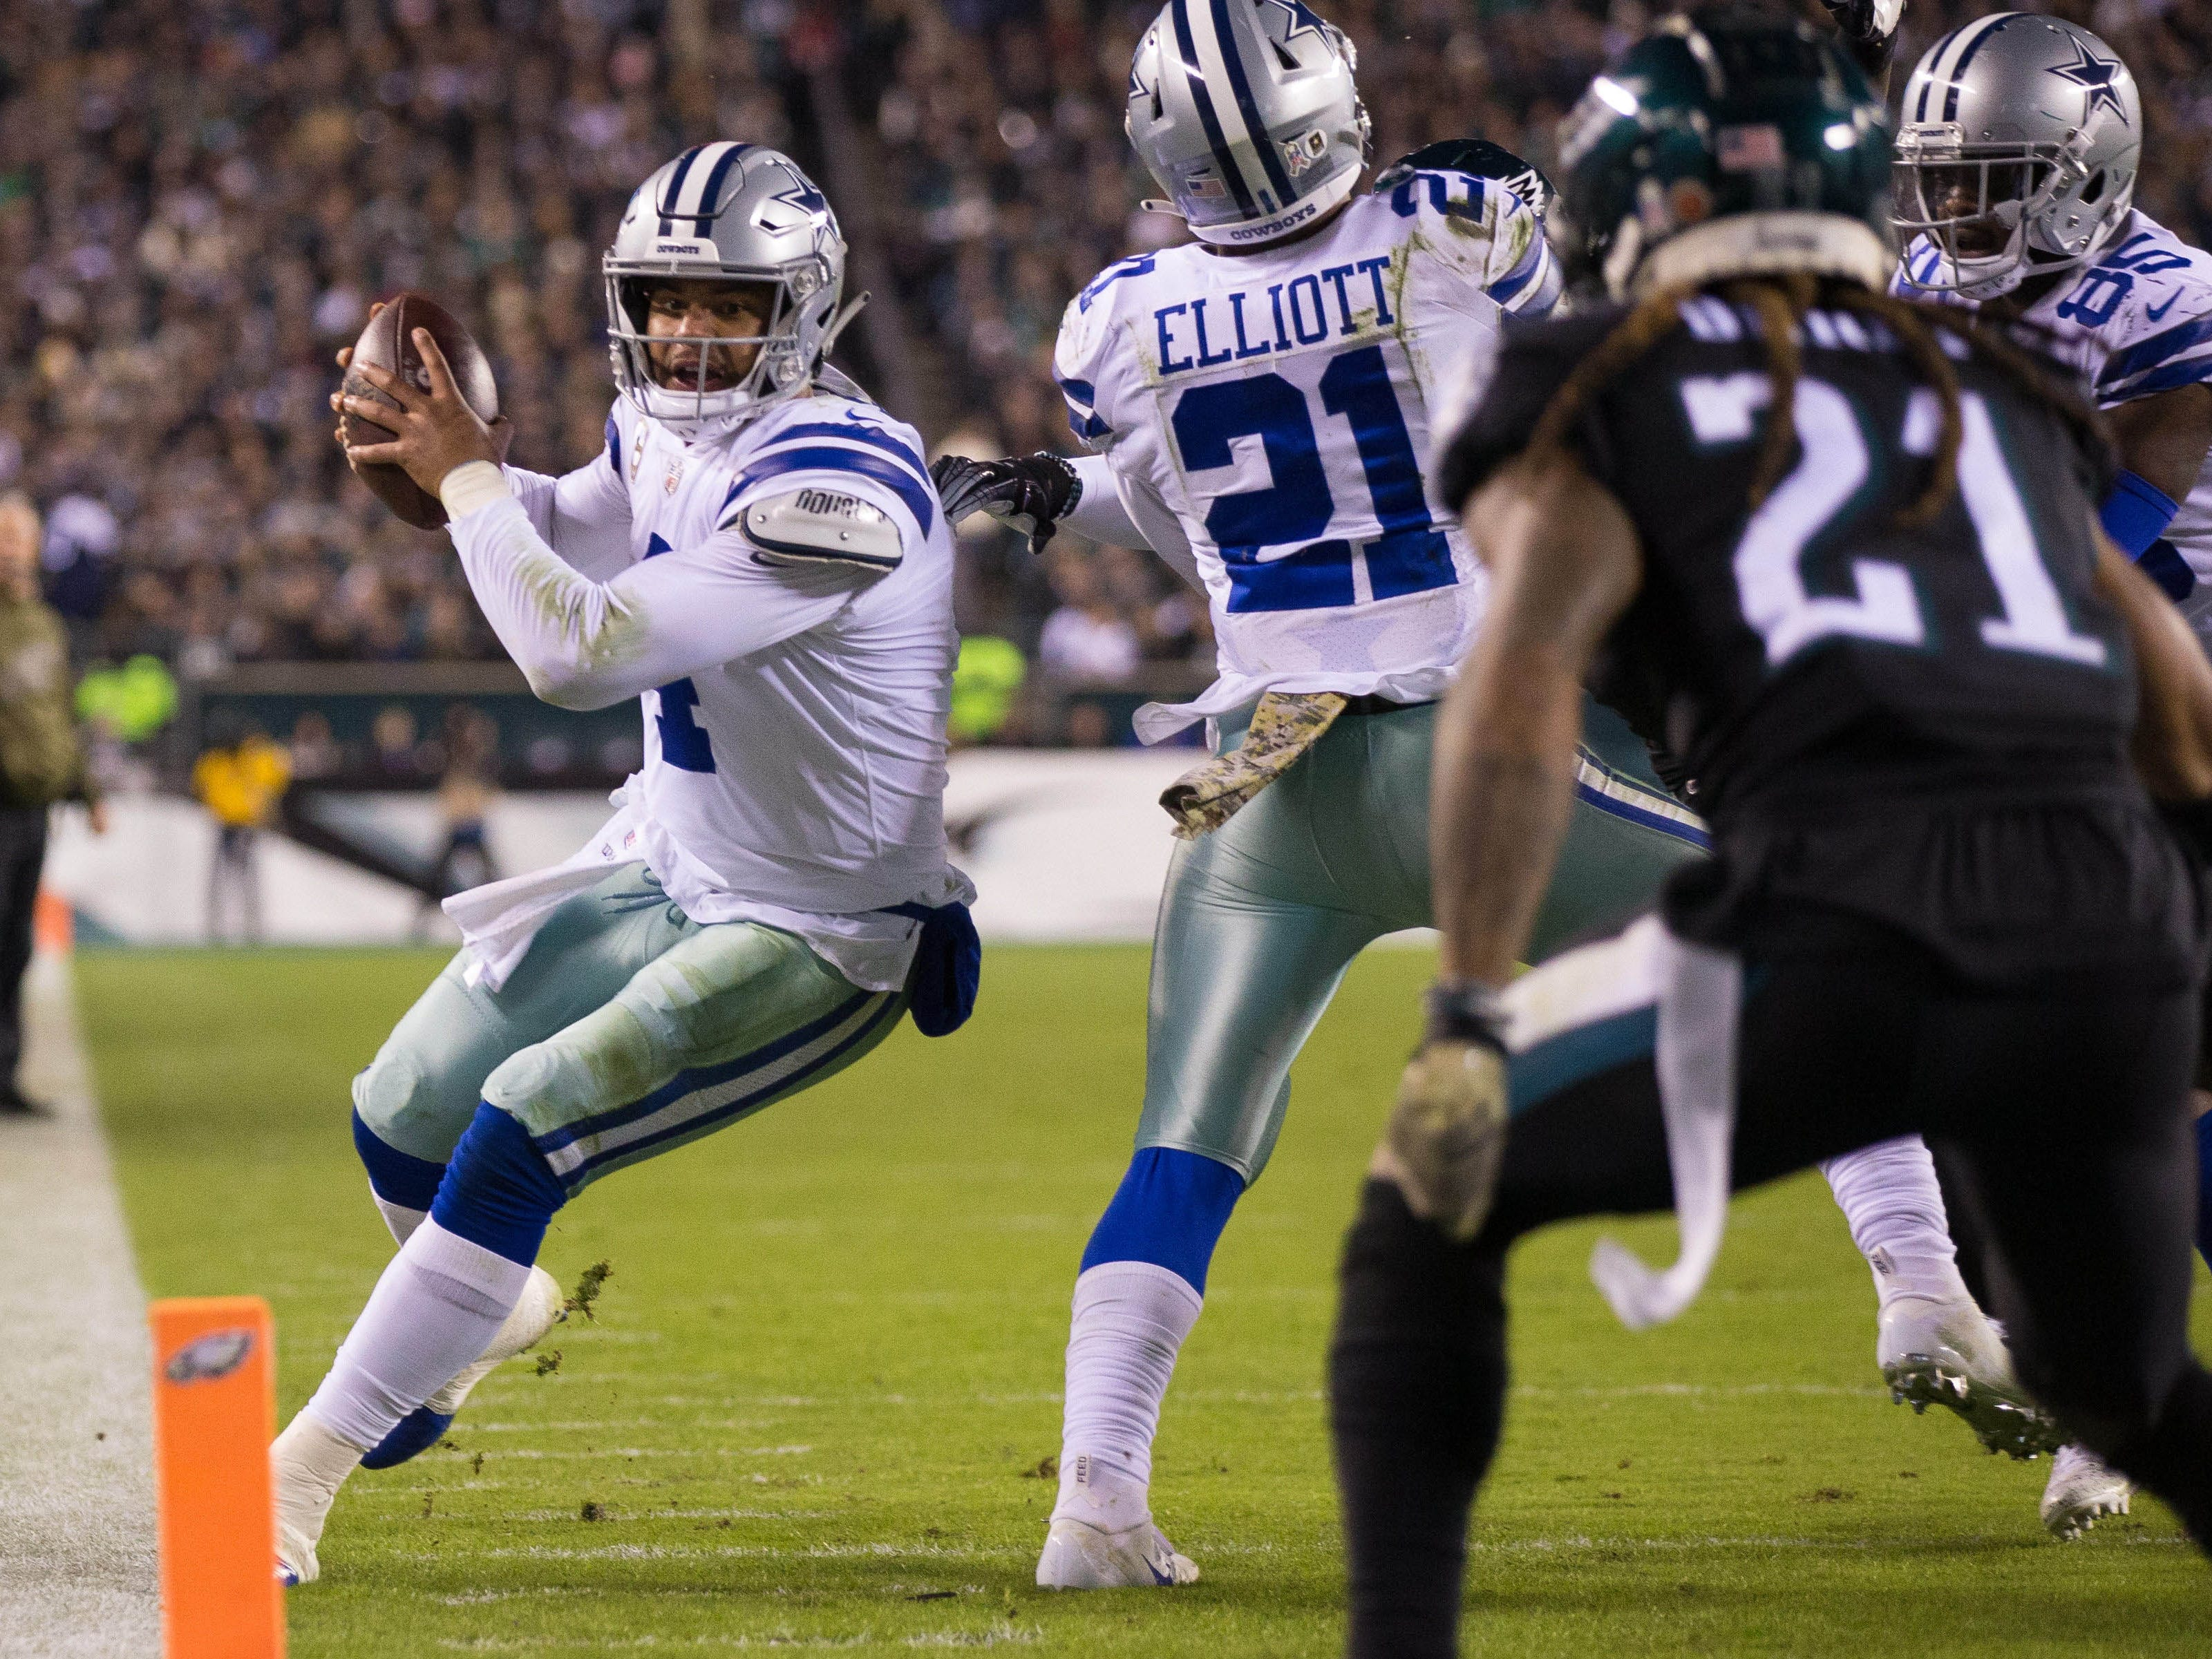 Dallas Cowboys quarterback Dak Prescott runs with the ball against the Philadelphia Eagles during the second quarter at Lincoln Financial Field.